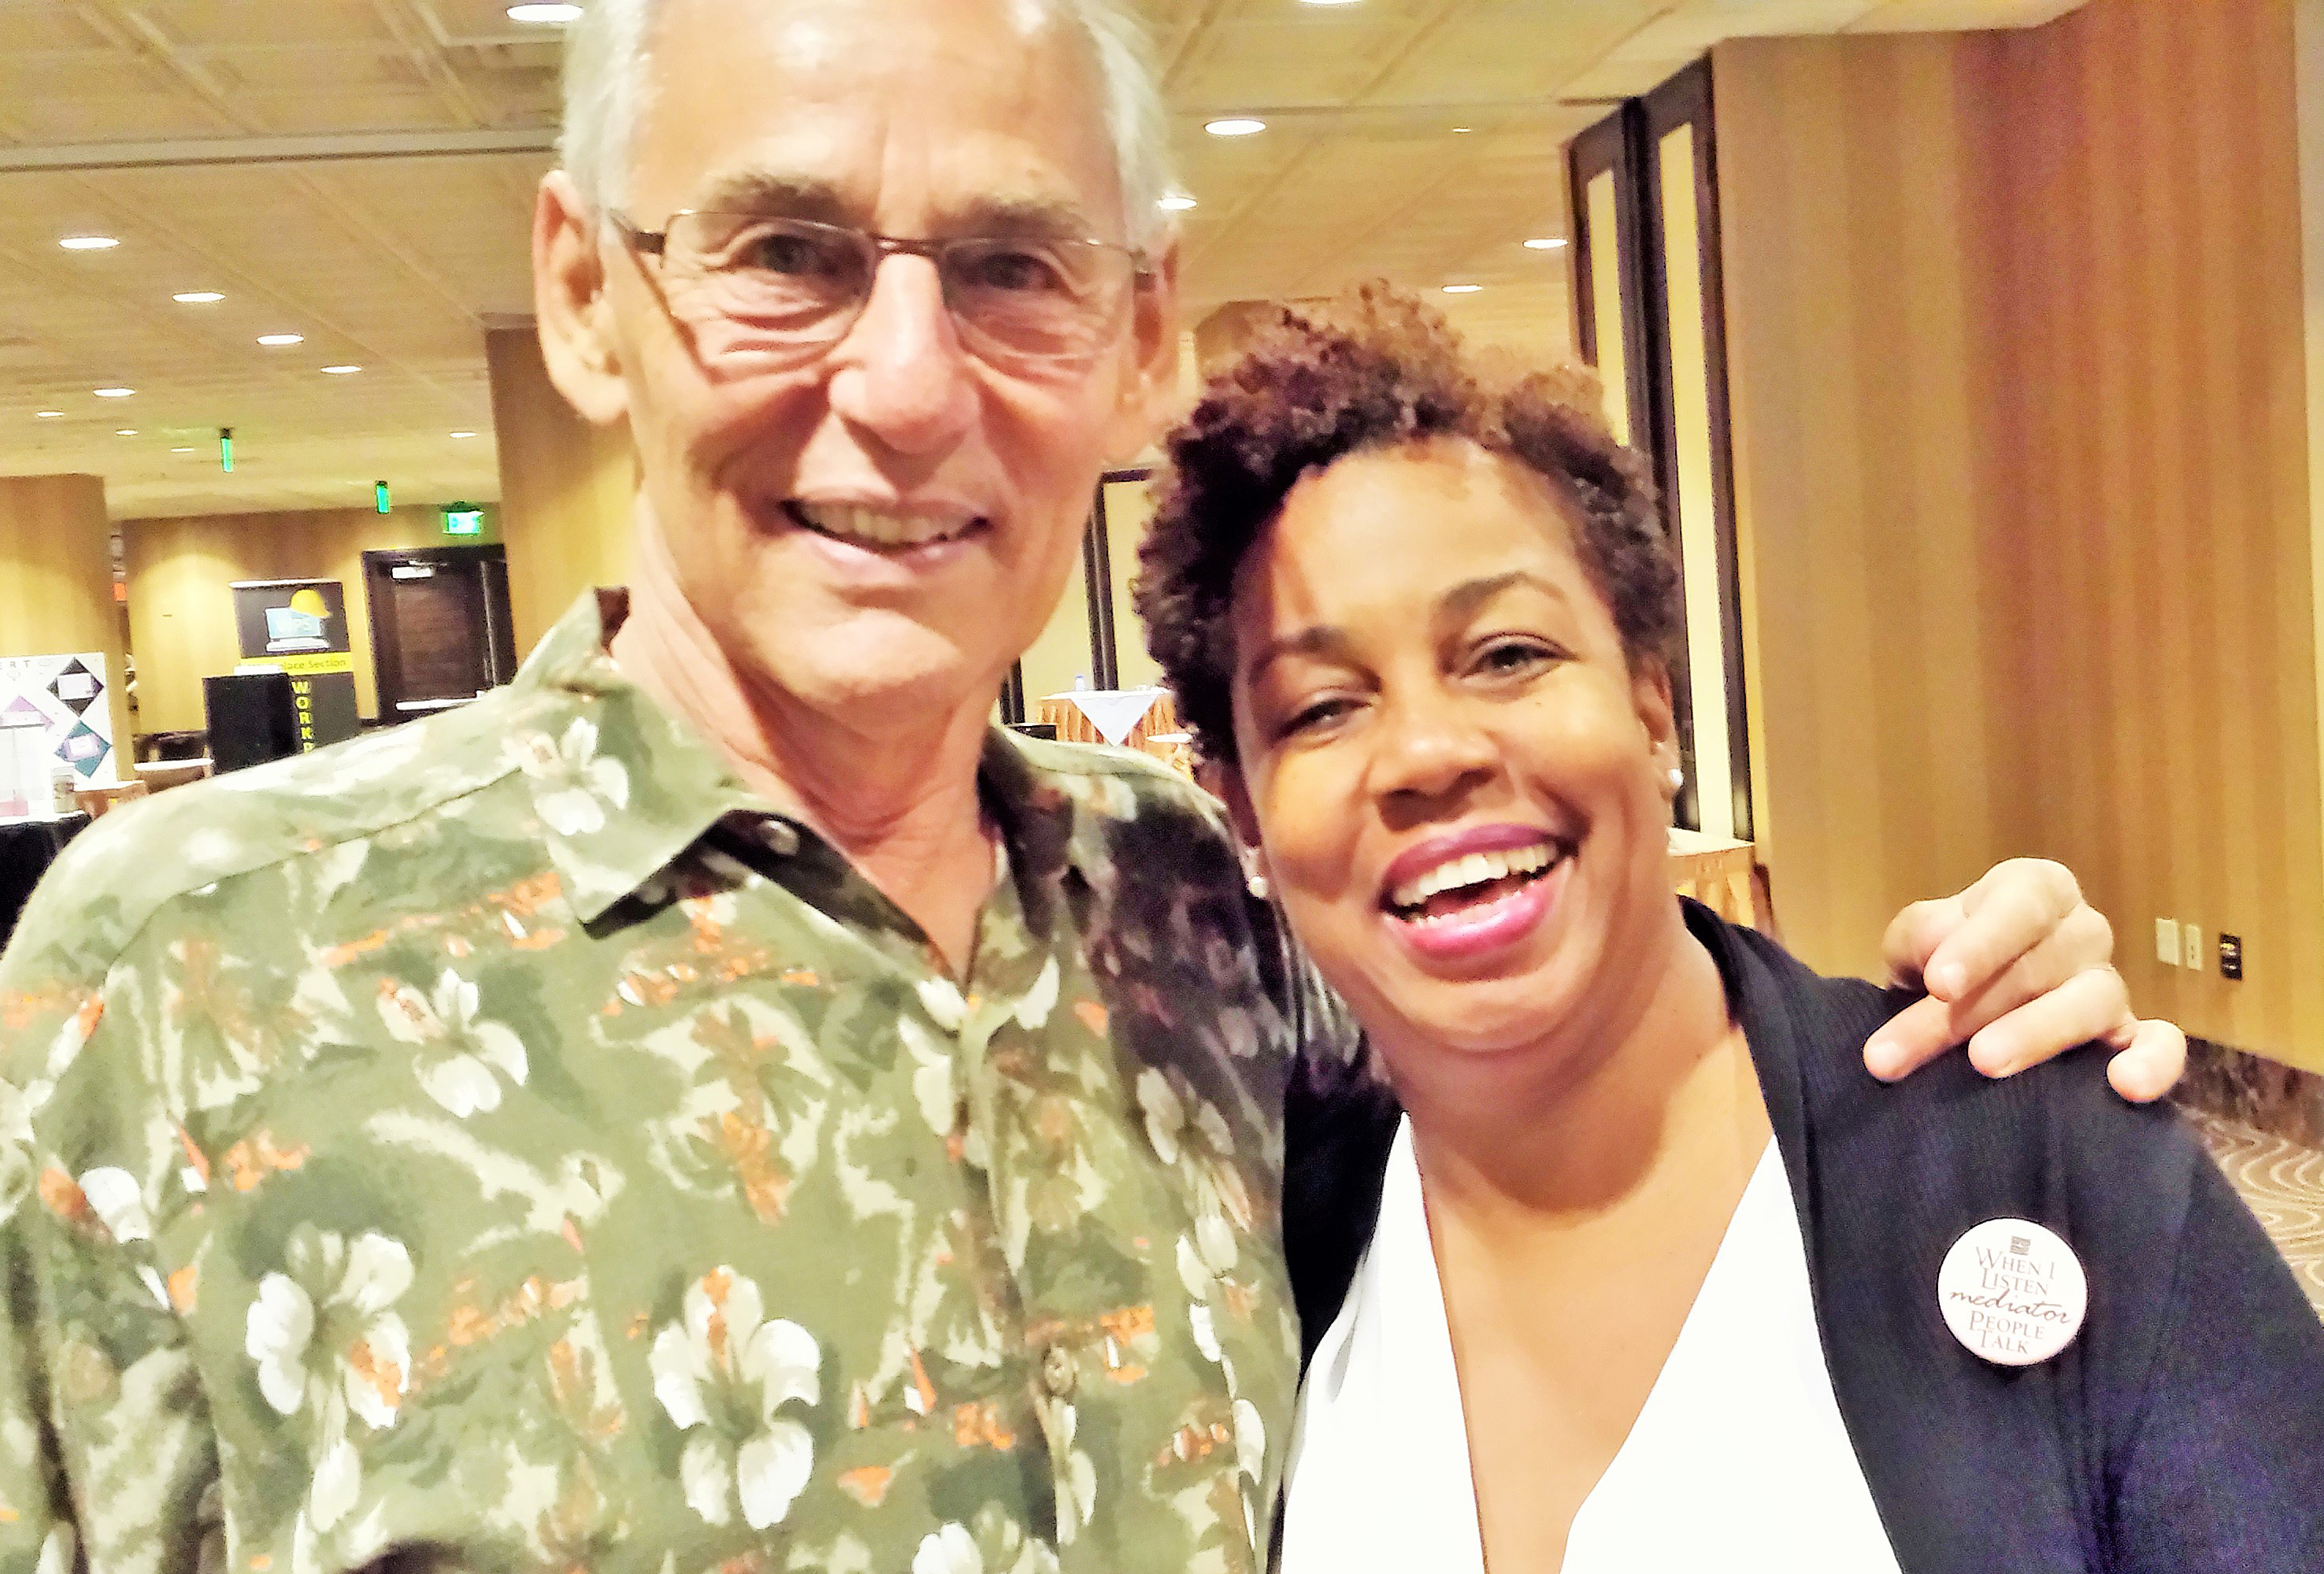 Here she is with Dr. Ken Cloke, author of a number of books on mediation and the professor who really made her recognize the healing power of mediation.